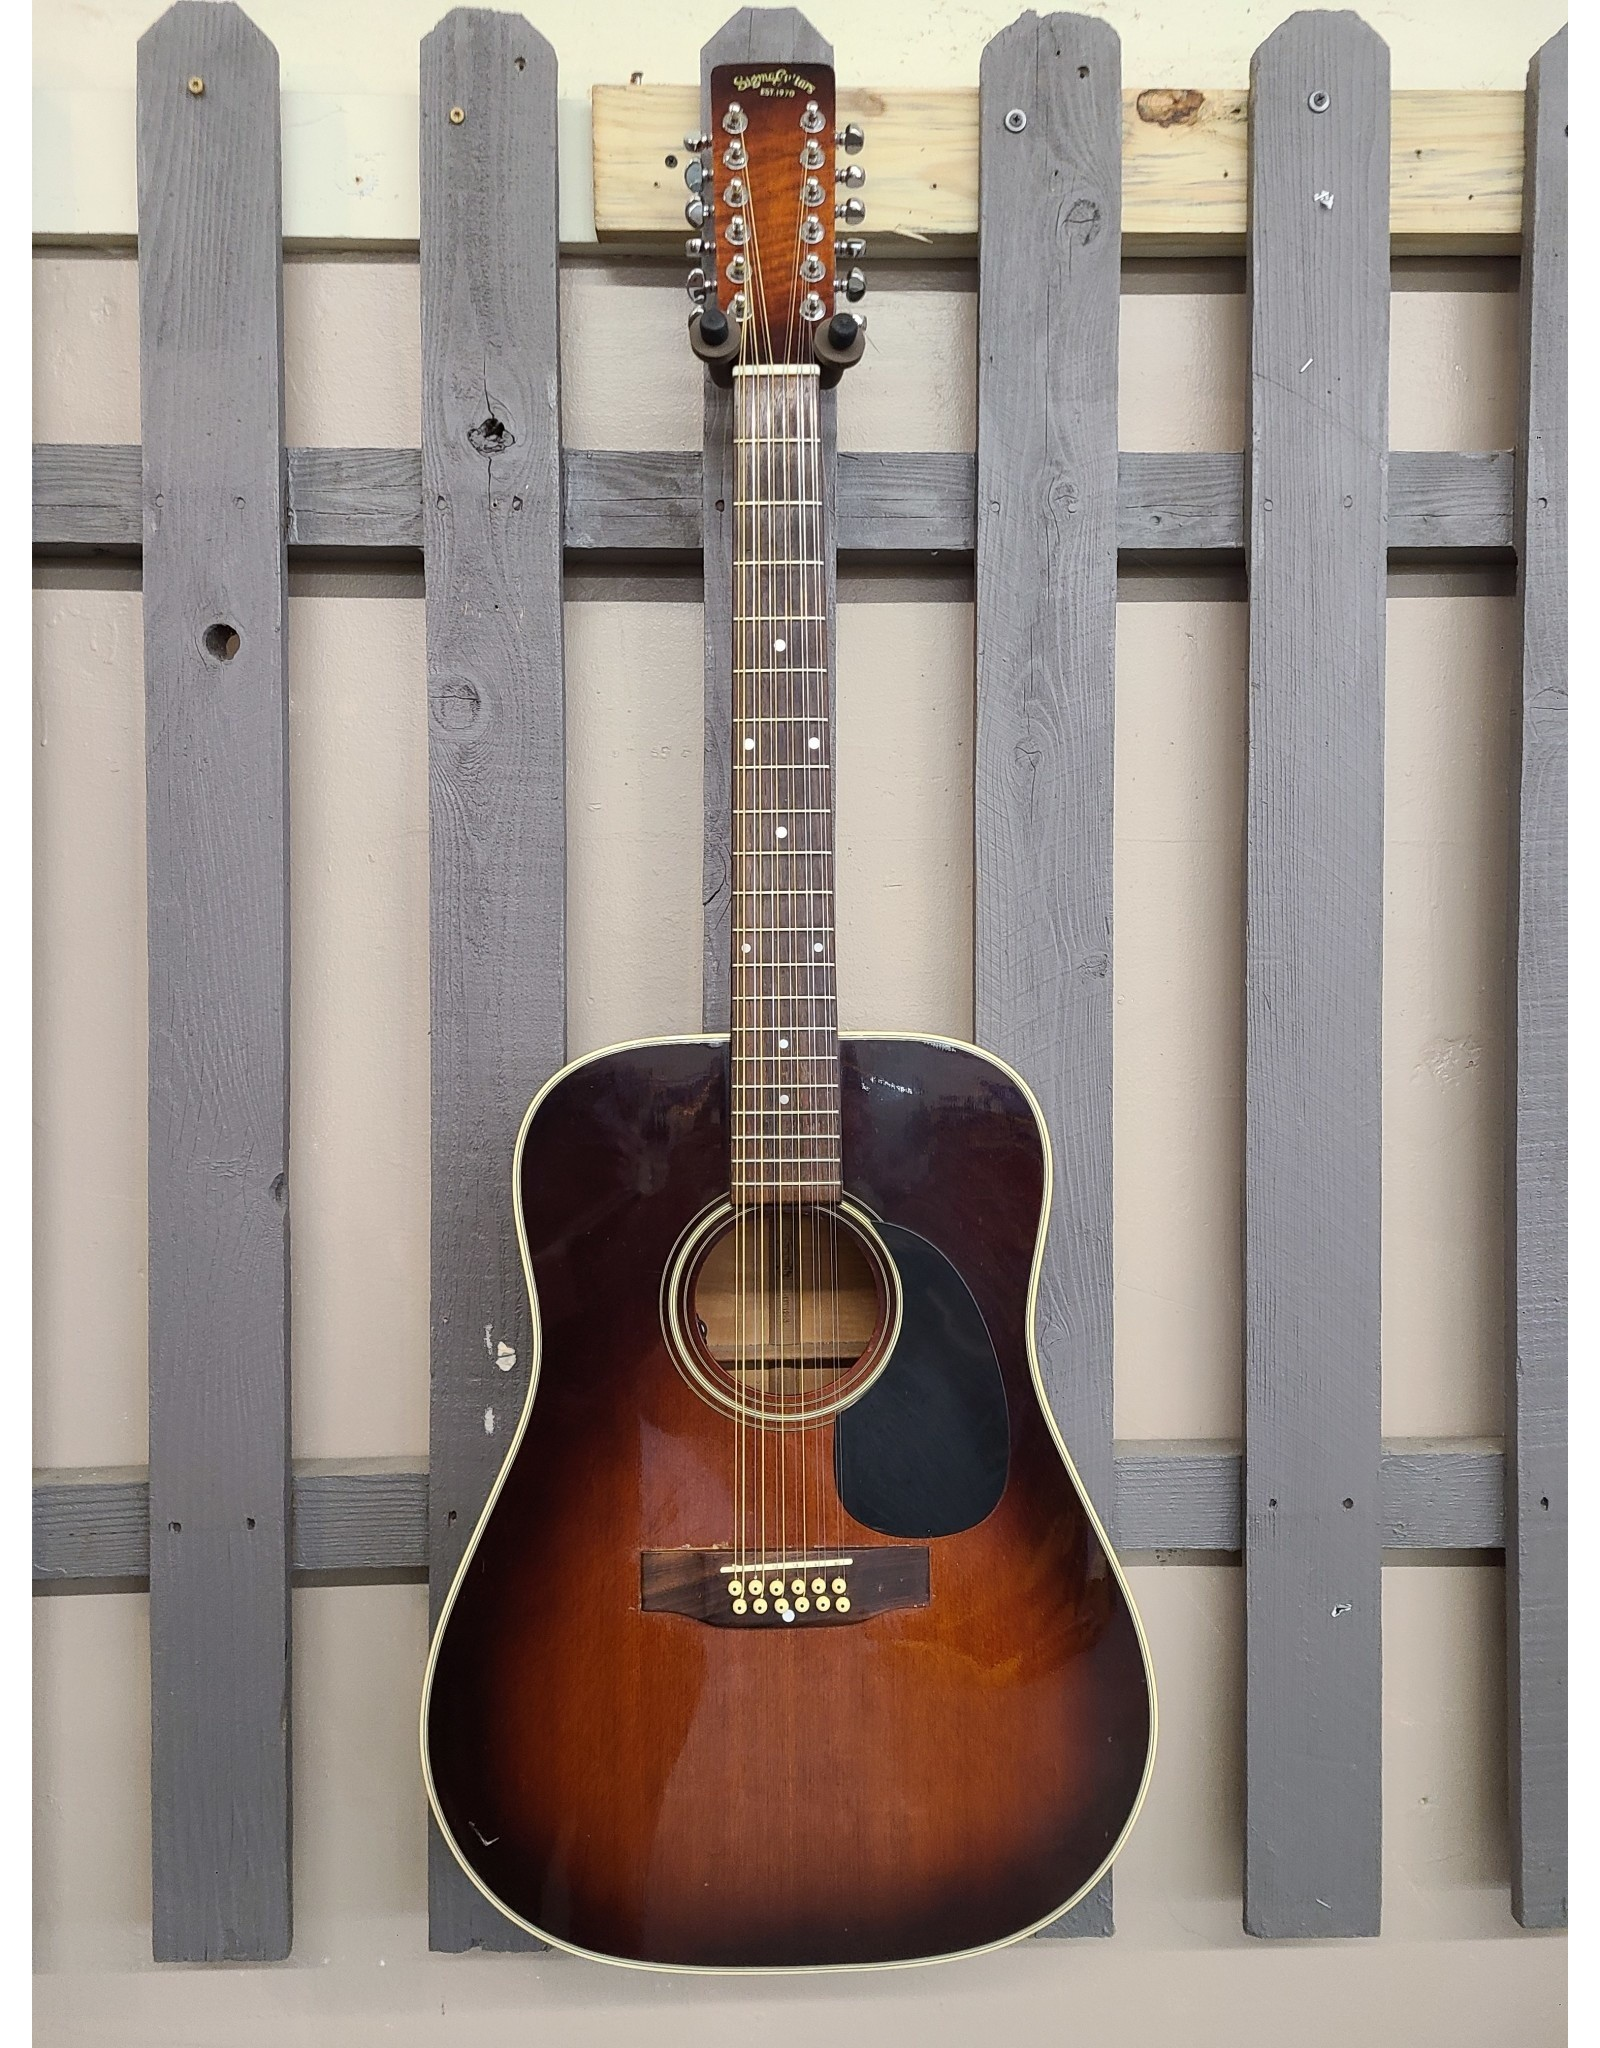 Sigma Sigma DT12-3 12-String Guitar (used)